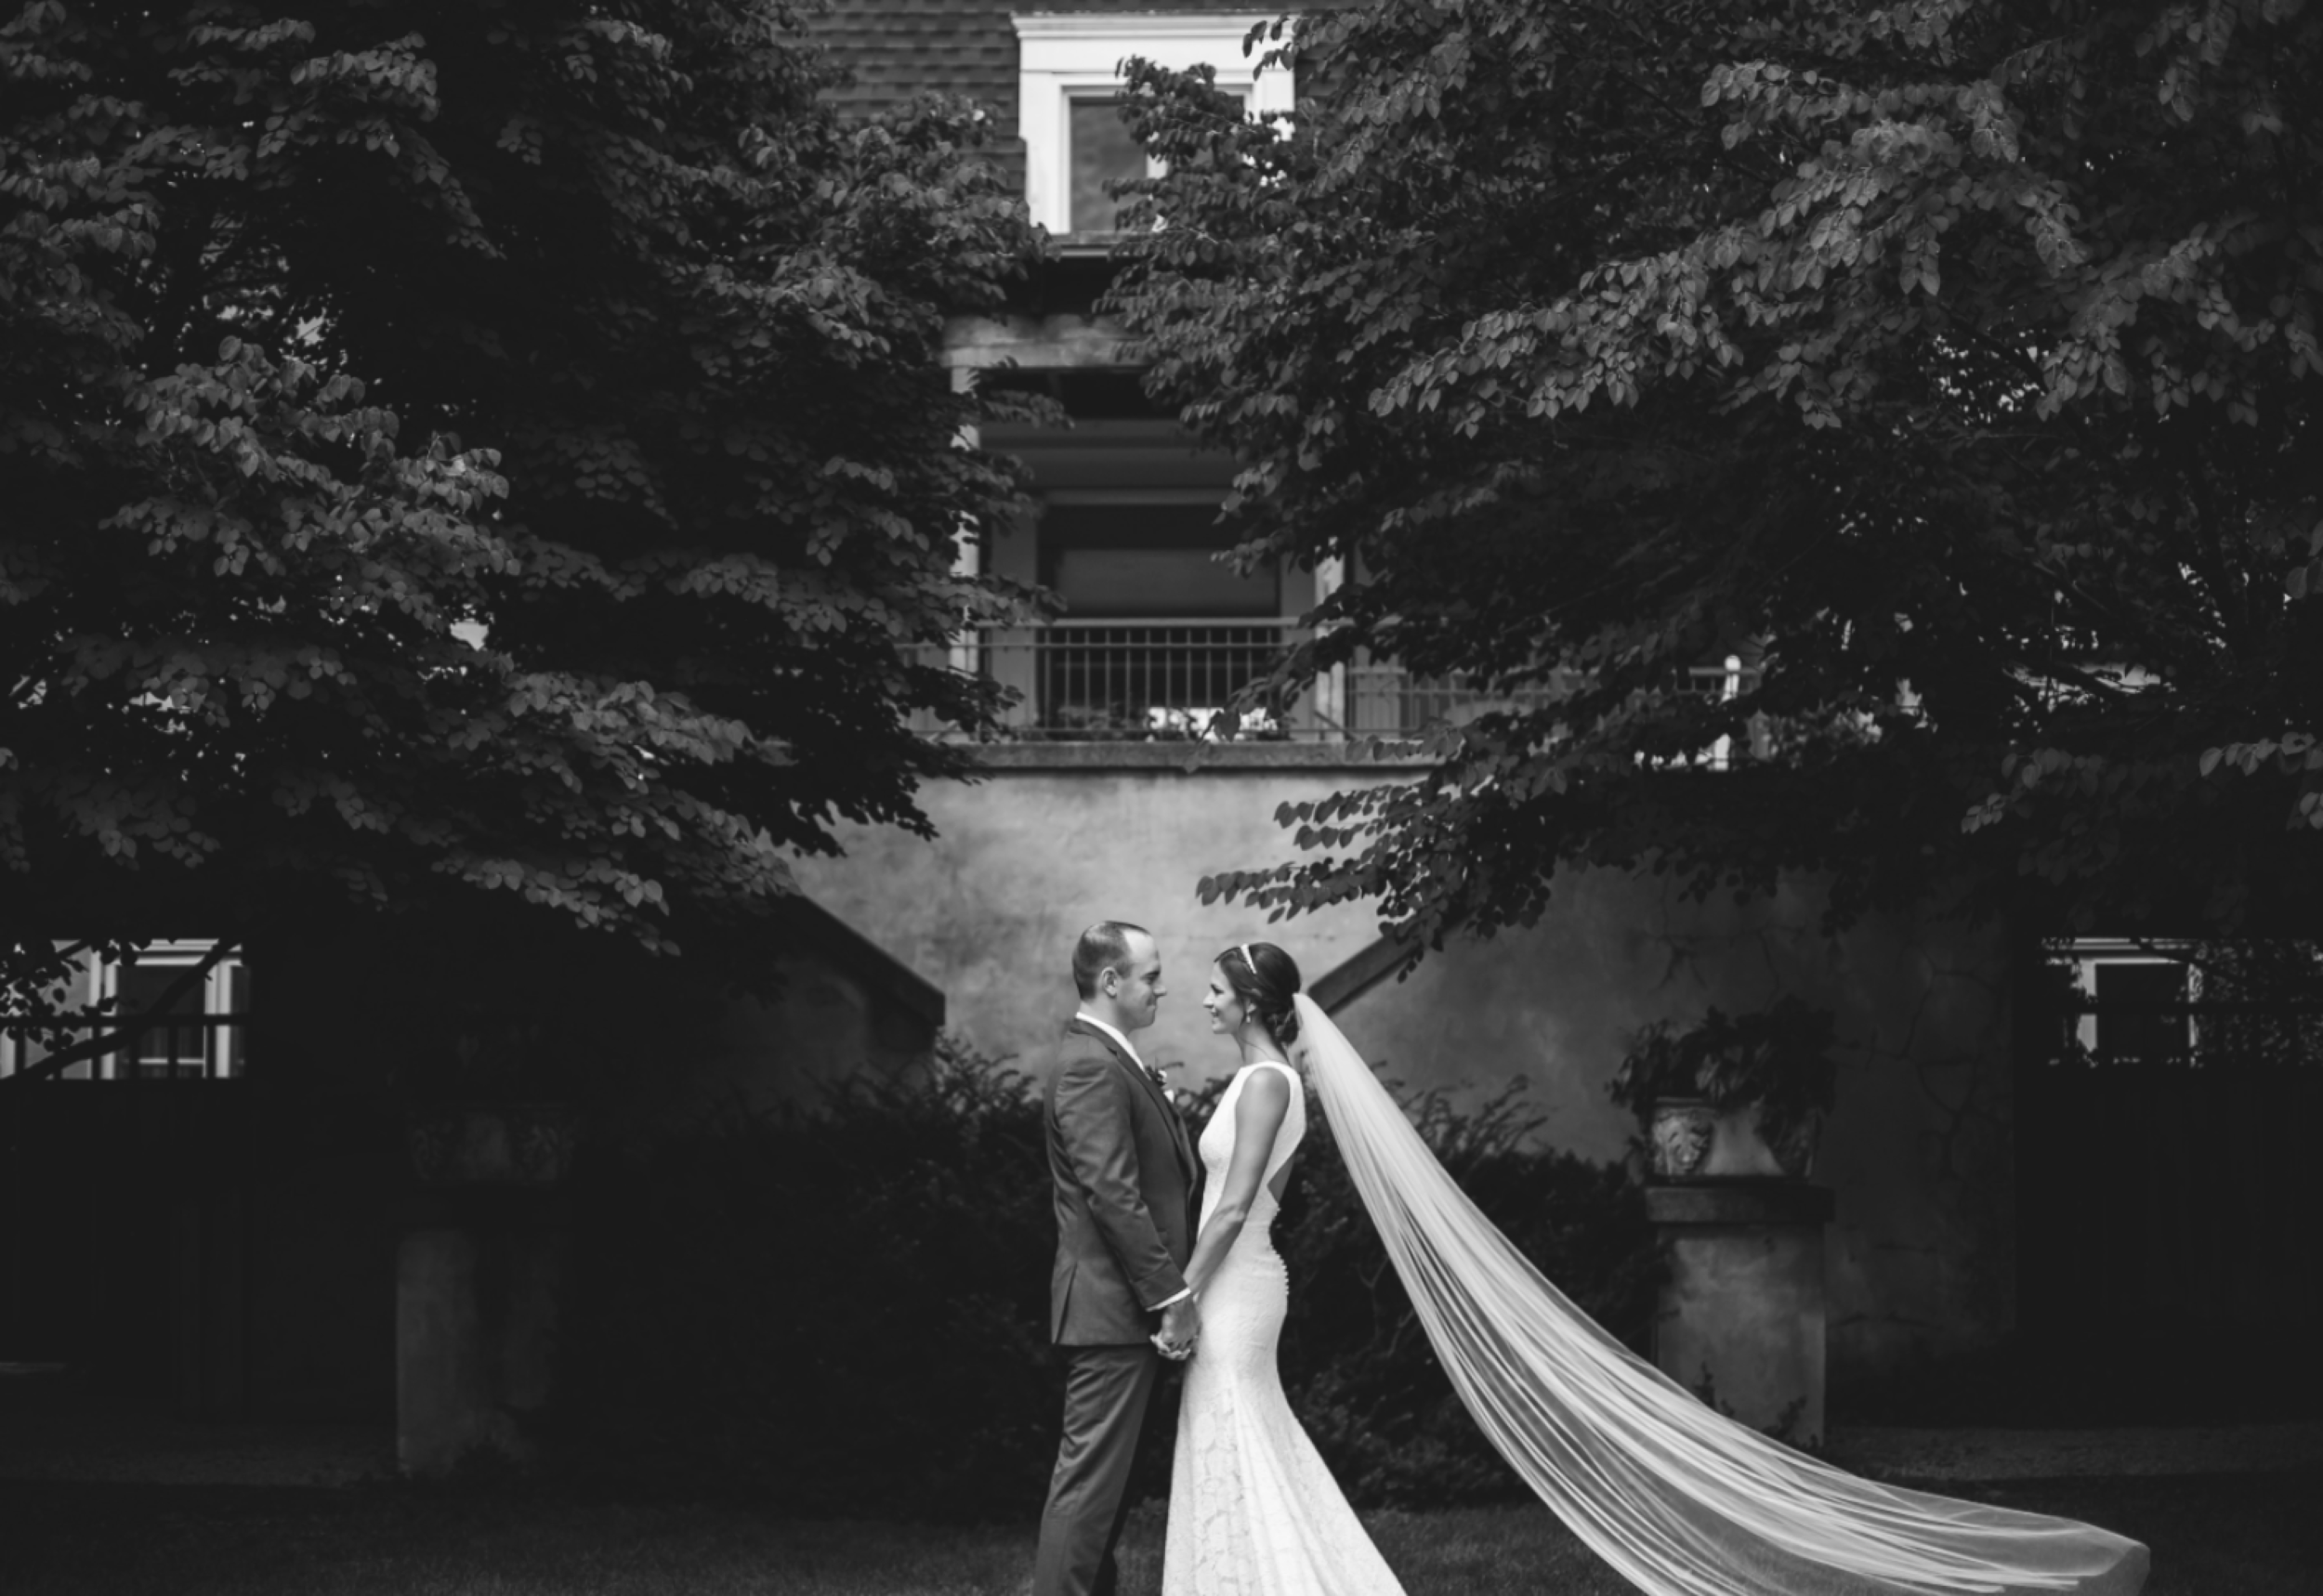 Moments-by-Lauren-Hamilton-Wedding-Family-Lifestyle-Photographer-Best-of-2017-Image-Photo-70.png